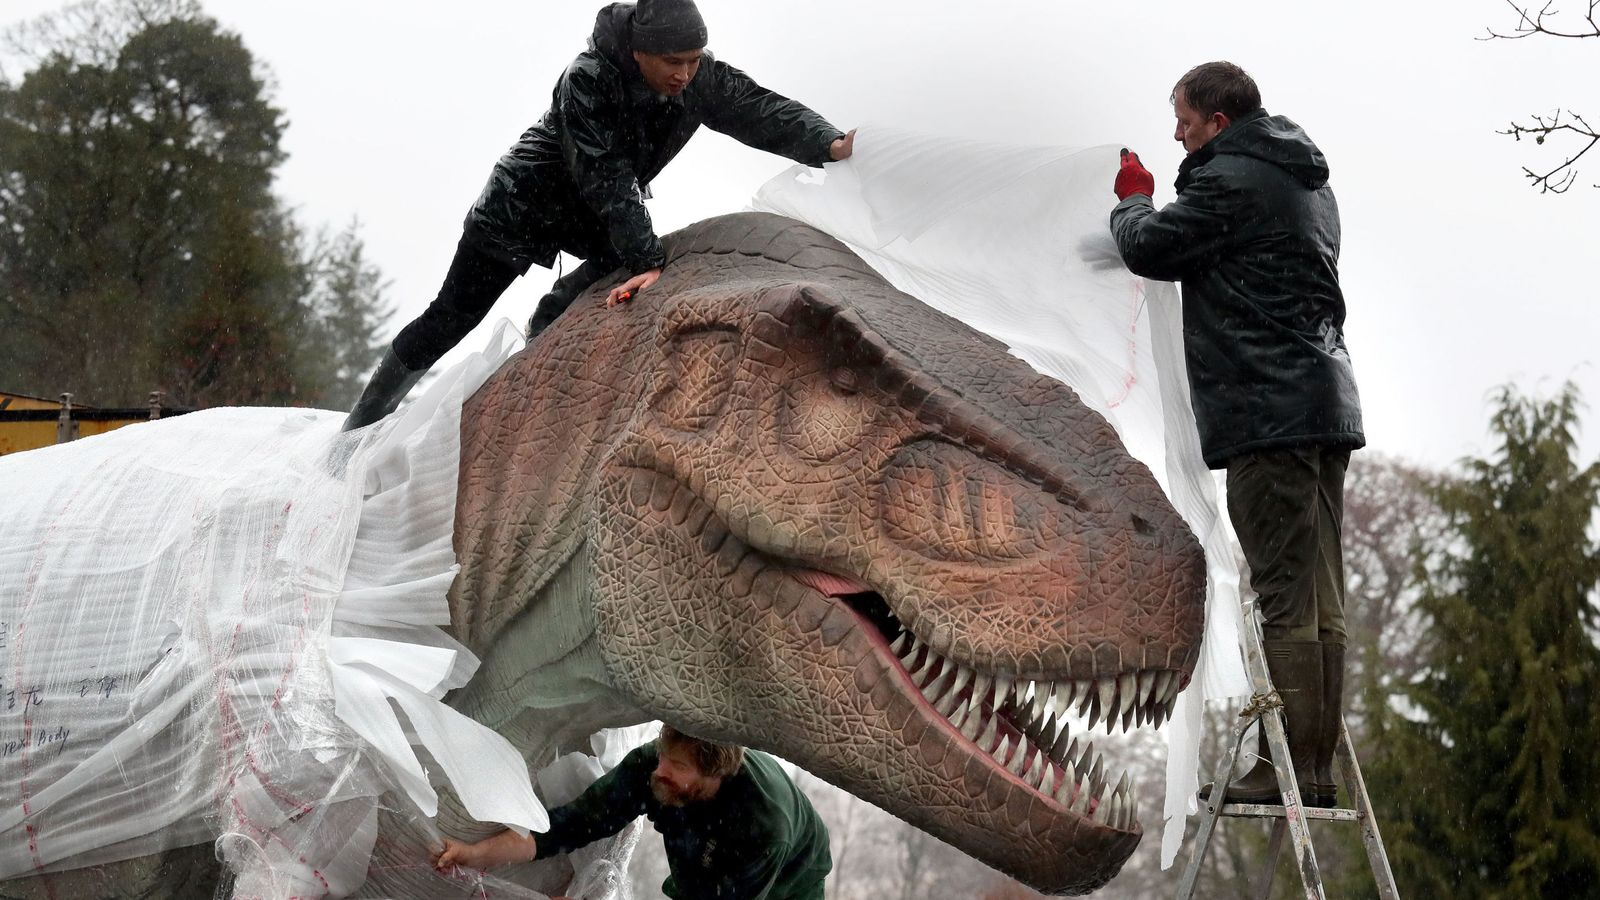 Life-size dinosaurs arrive at safari park to form new exhibition in Stirling | UK News